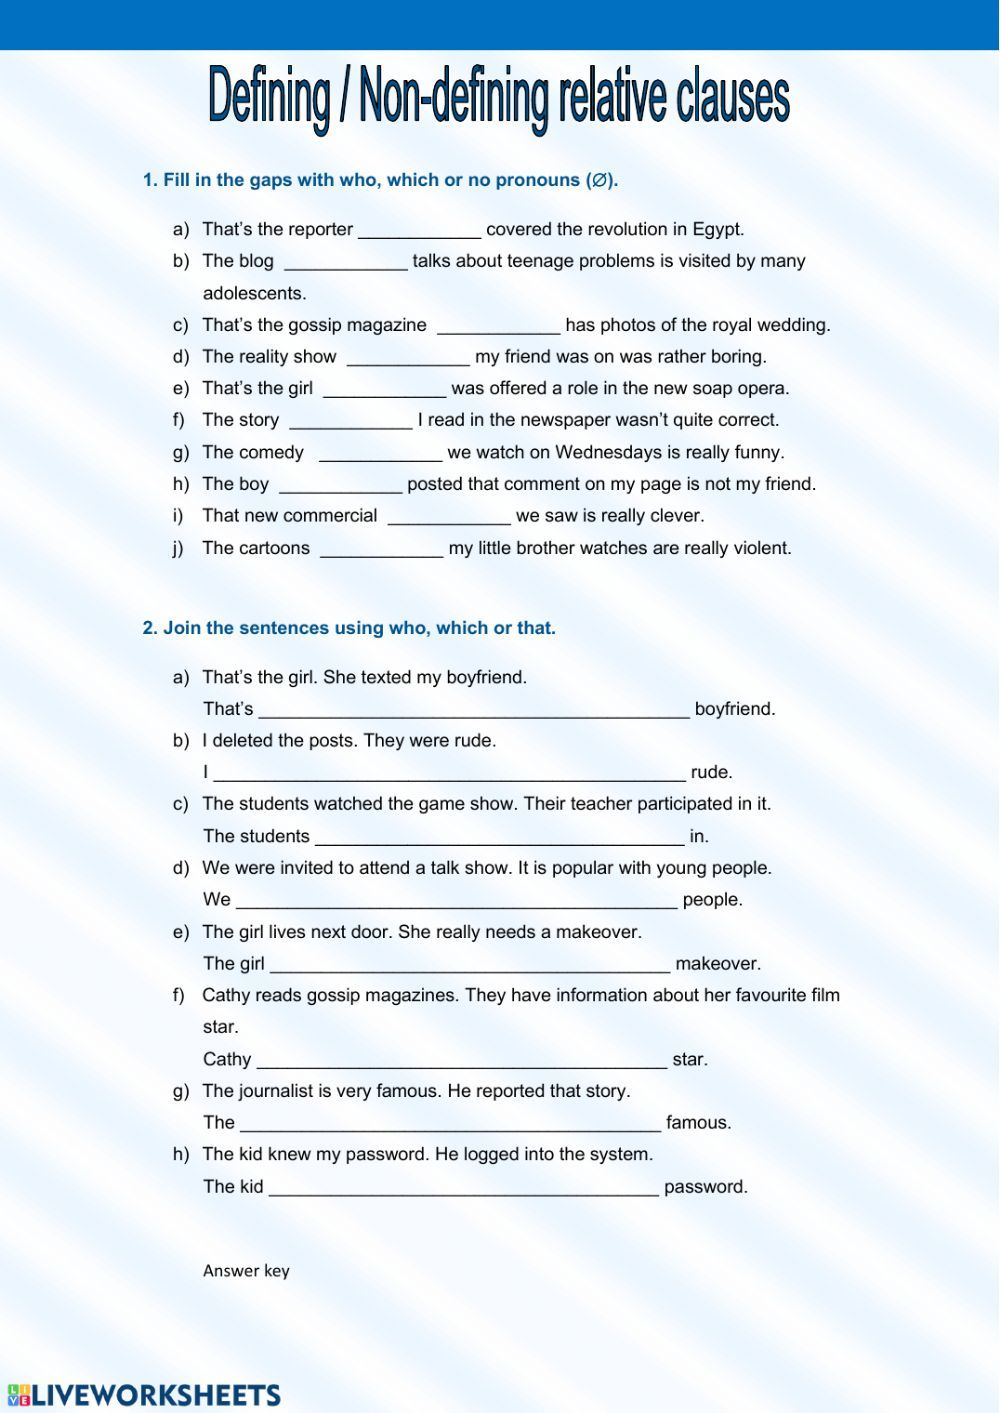 Relative Clauses online worksheet and pdf. You can do the